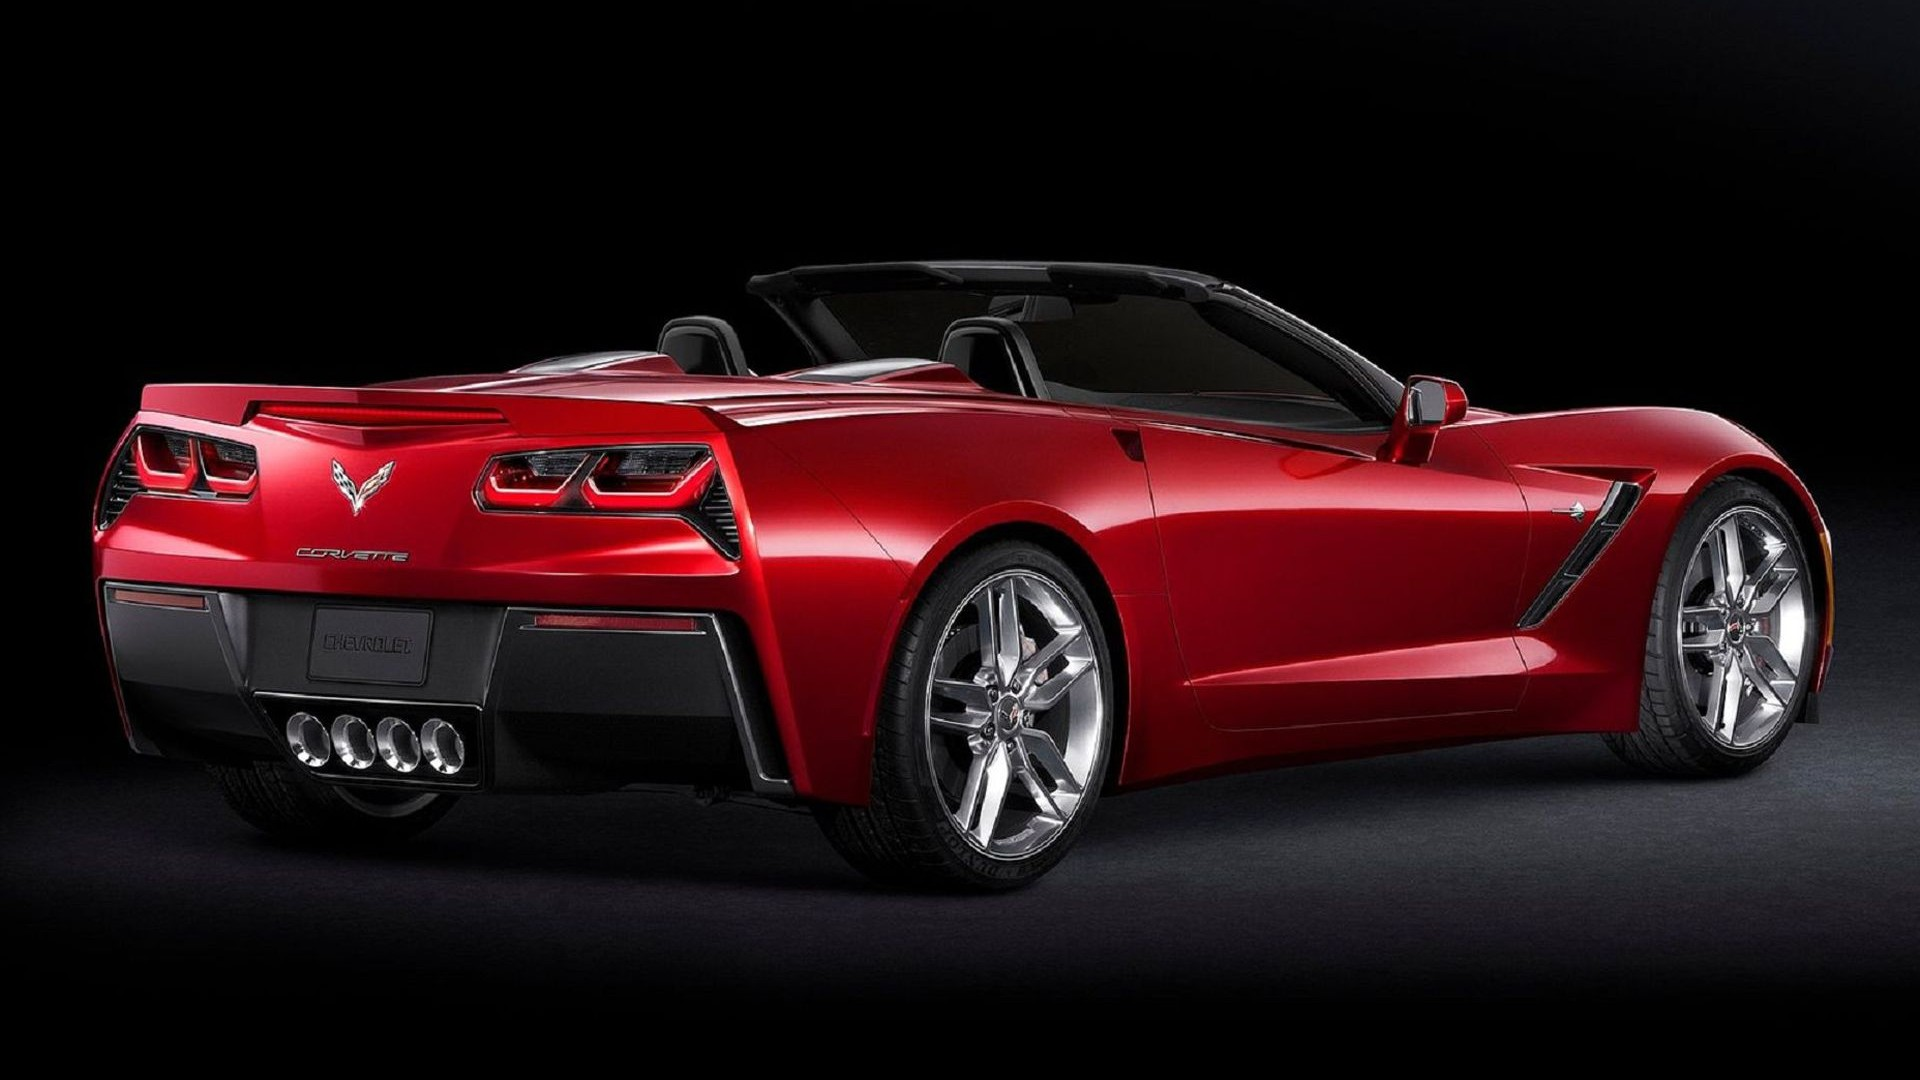 C7 CORVETTE Cars HD Wallpapers amp Pictures Hd Wallpapers 1920x1080